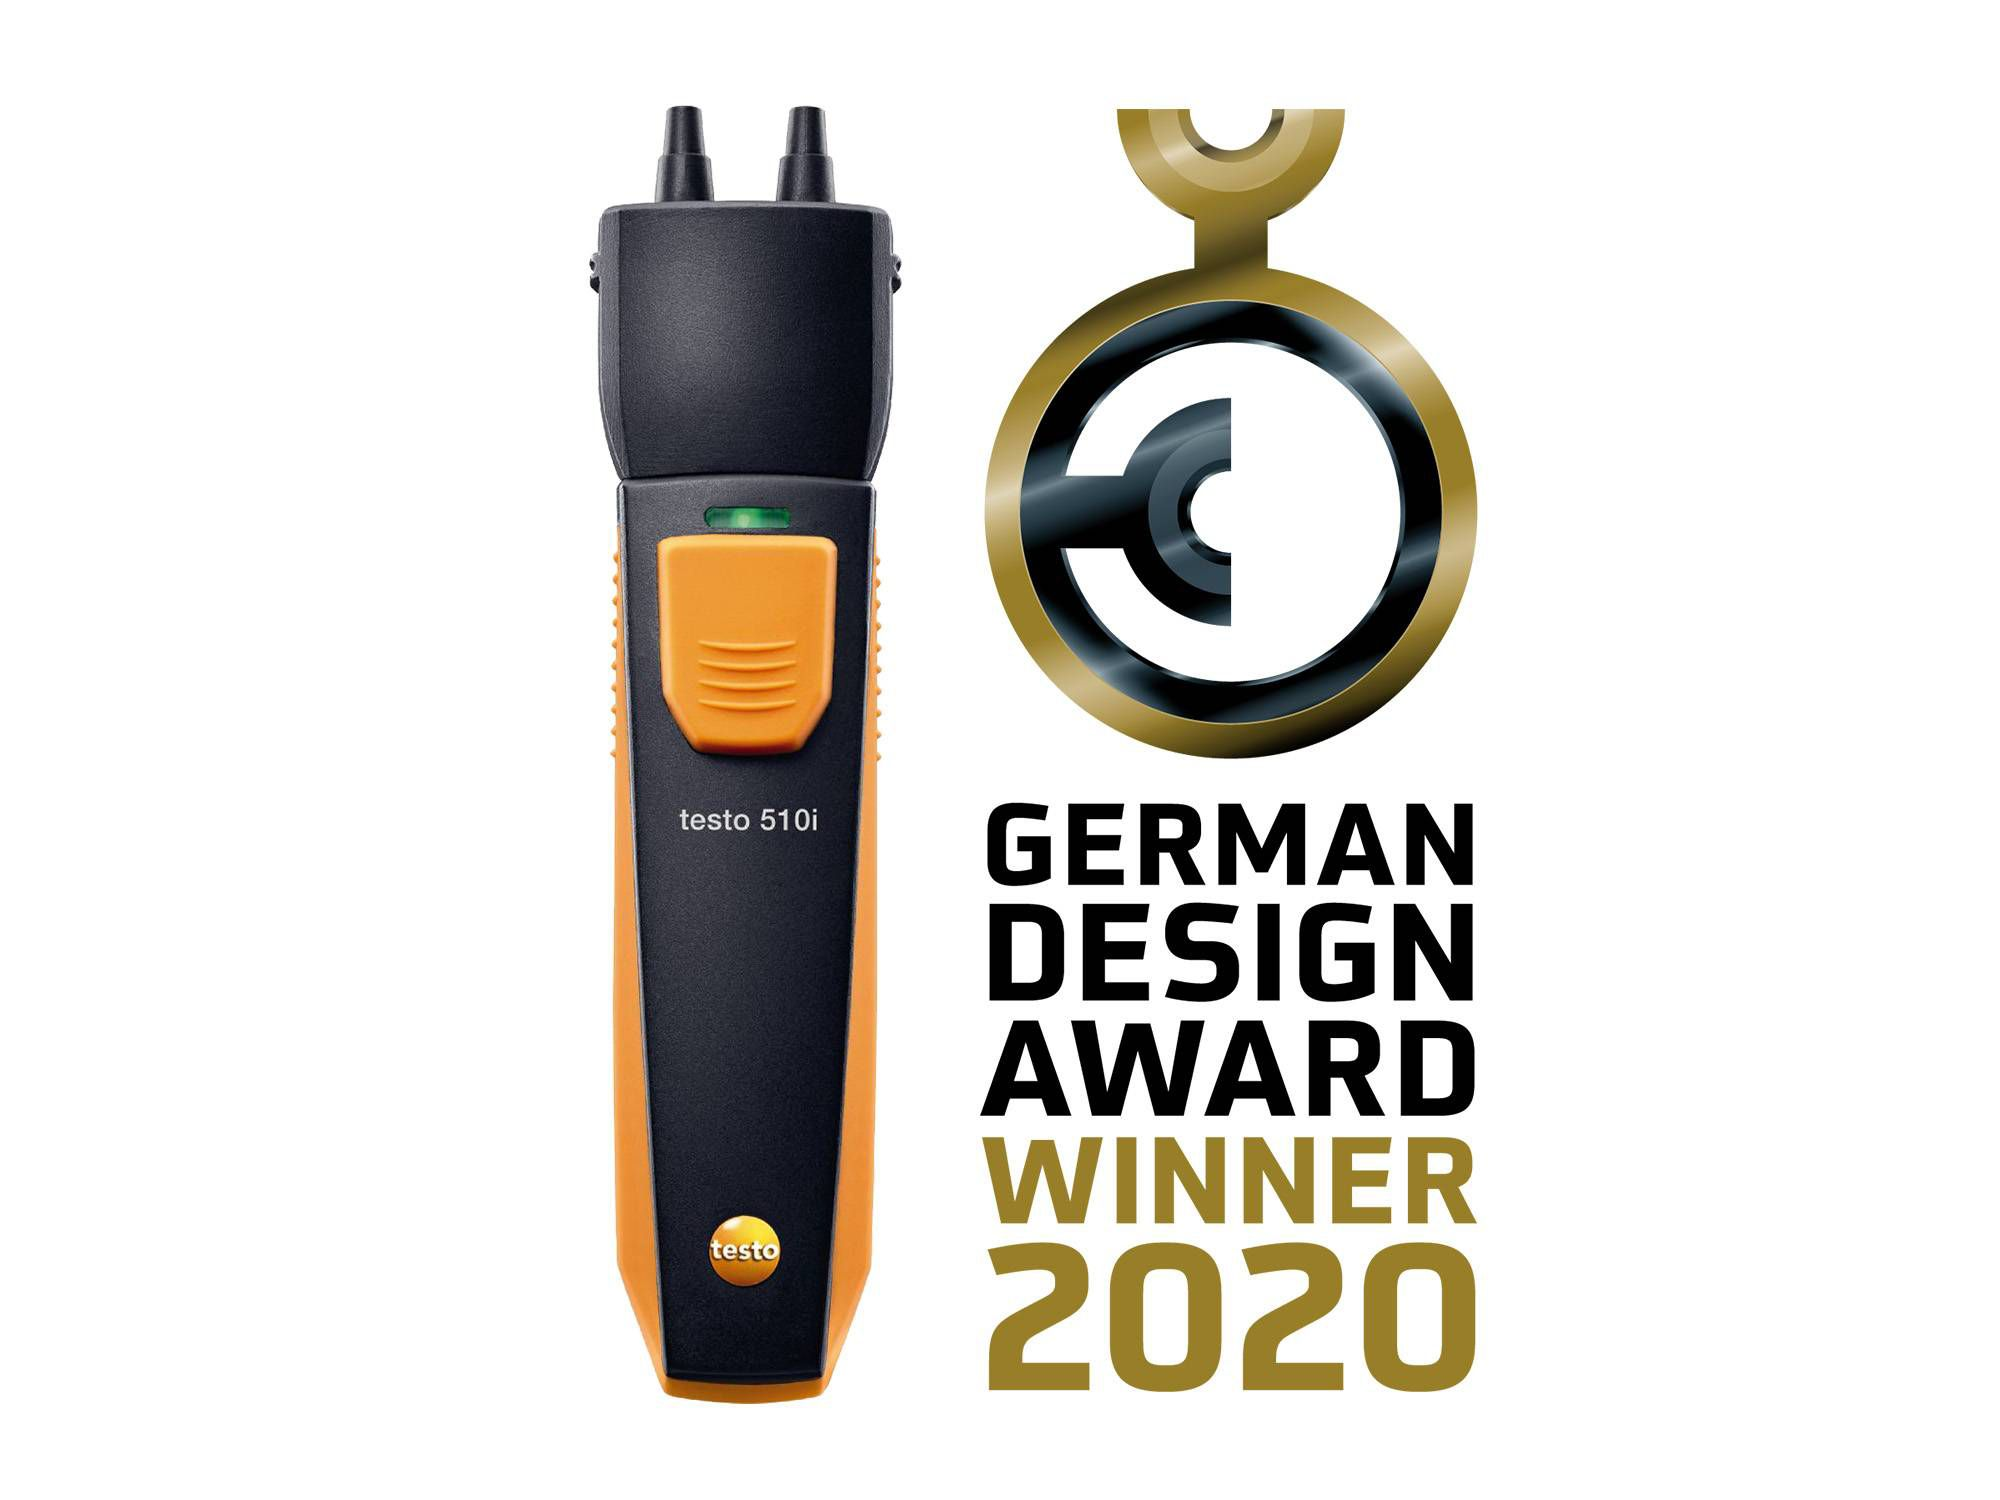 testo 510i German Design Award